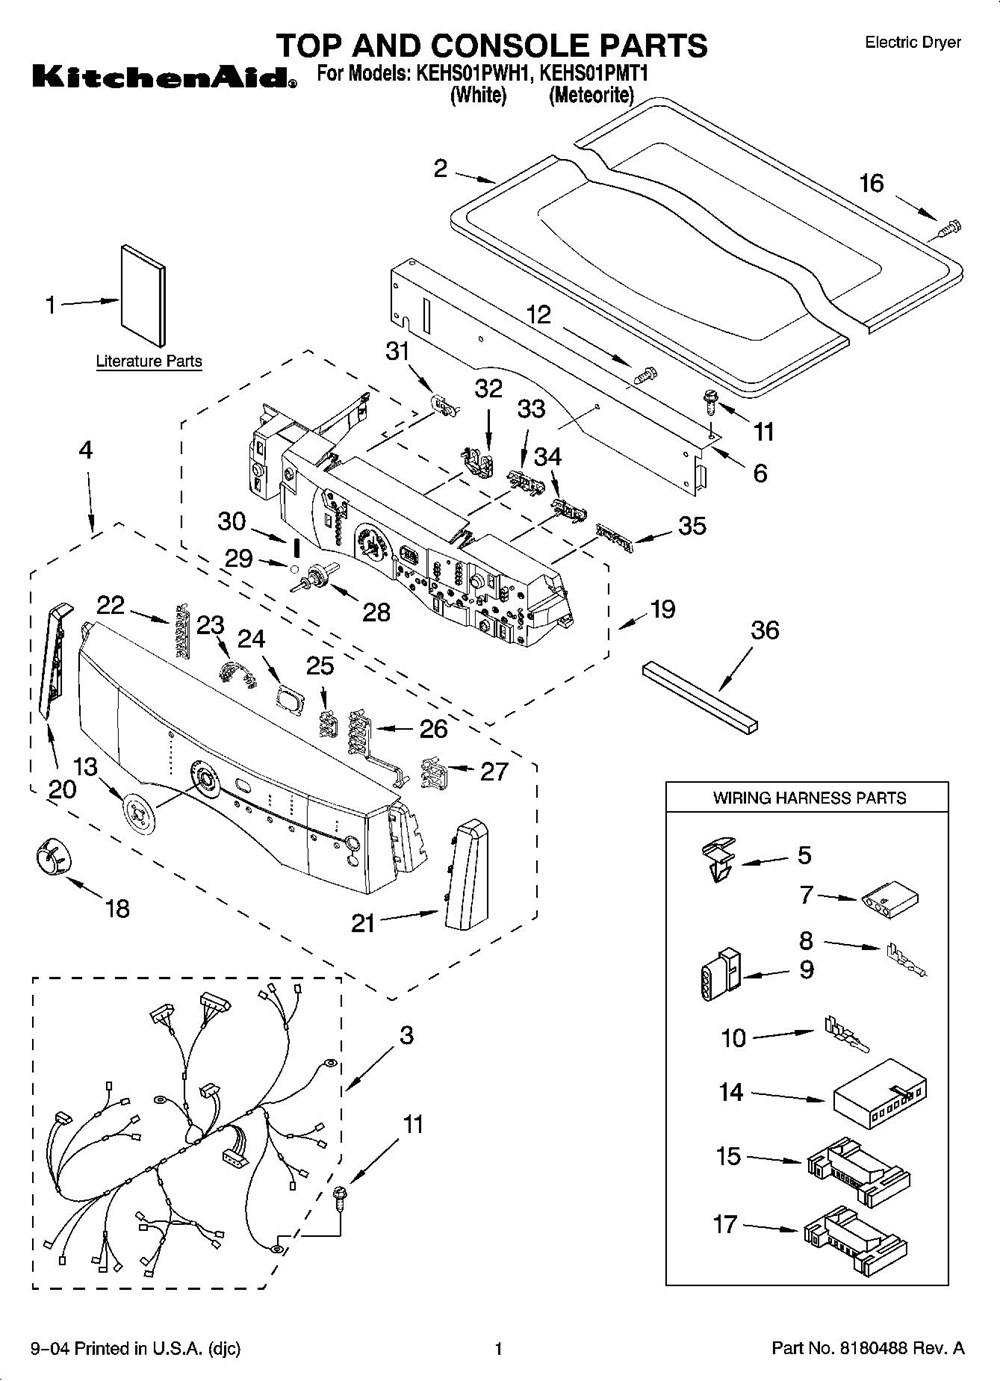 Mde9700ayw Wiring Diagram And Schematics Jeep Dj5 Astonishing Maytag Neptune Fuse Contemporary Best Image Whirlpoolimg 19000101 20150716 00106515 Diagrampy